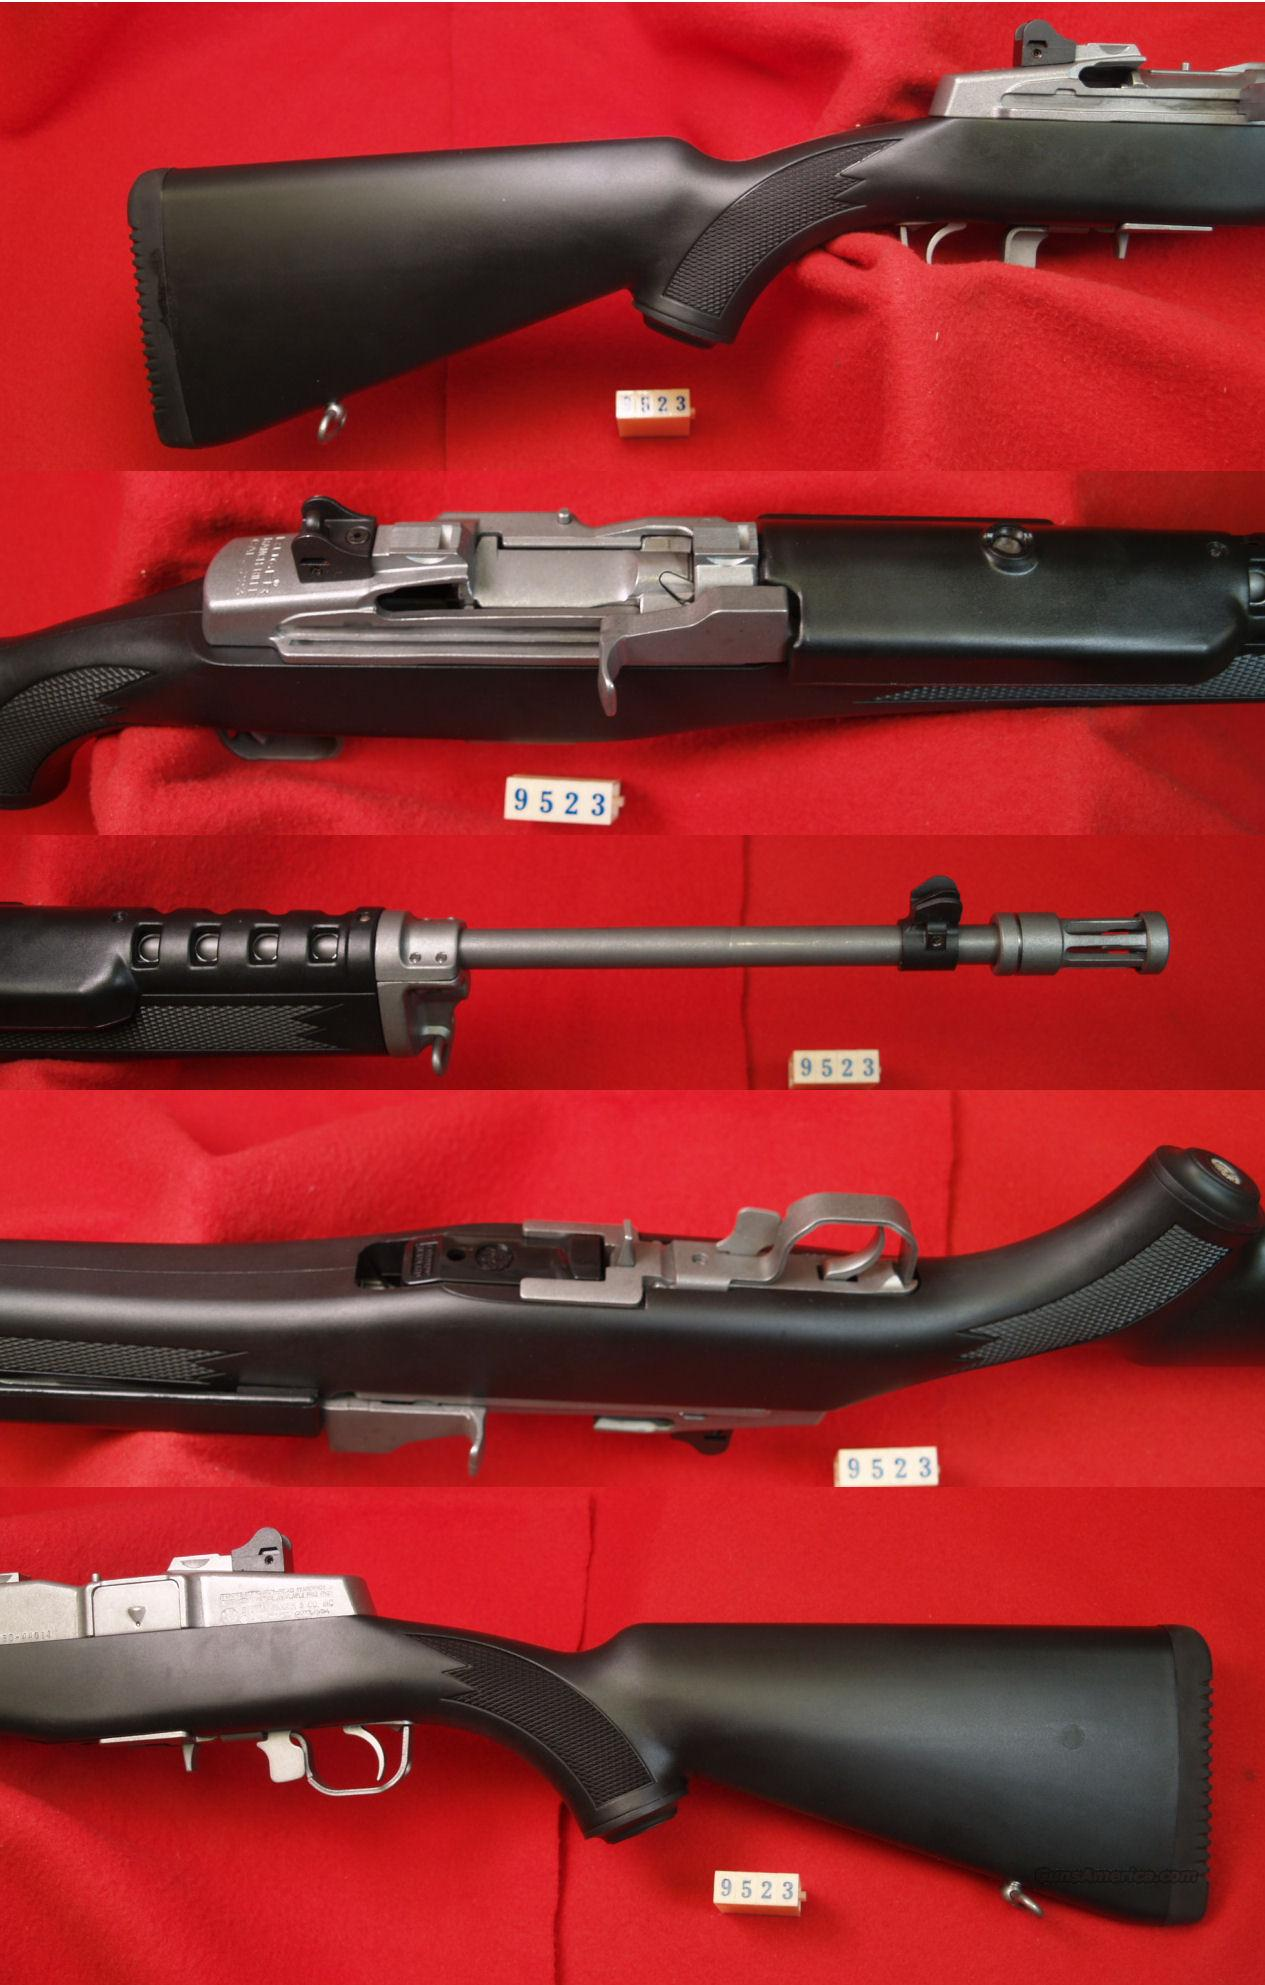 RUGER MINI 14 RANCH RIFLE  223 REM  Guns > Rifles > Ruger Rifles > Mini-14 Type